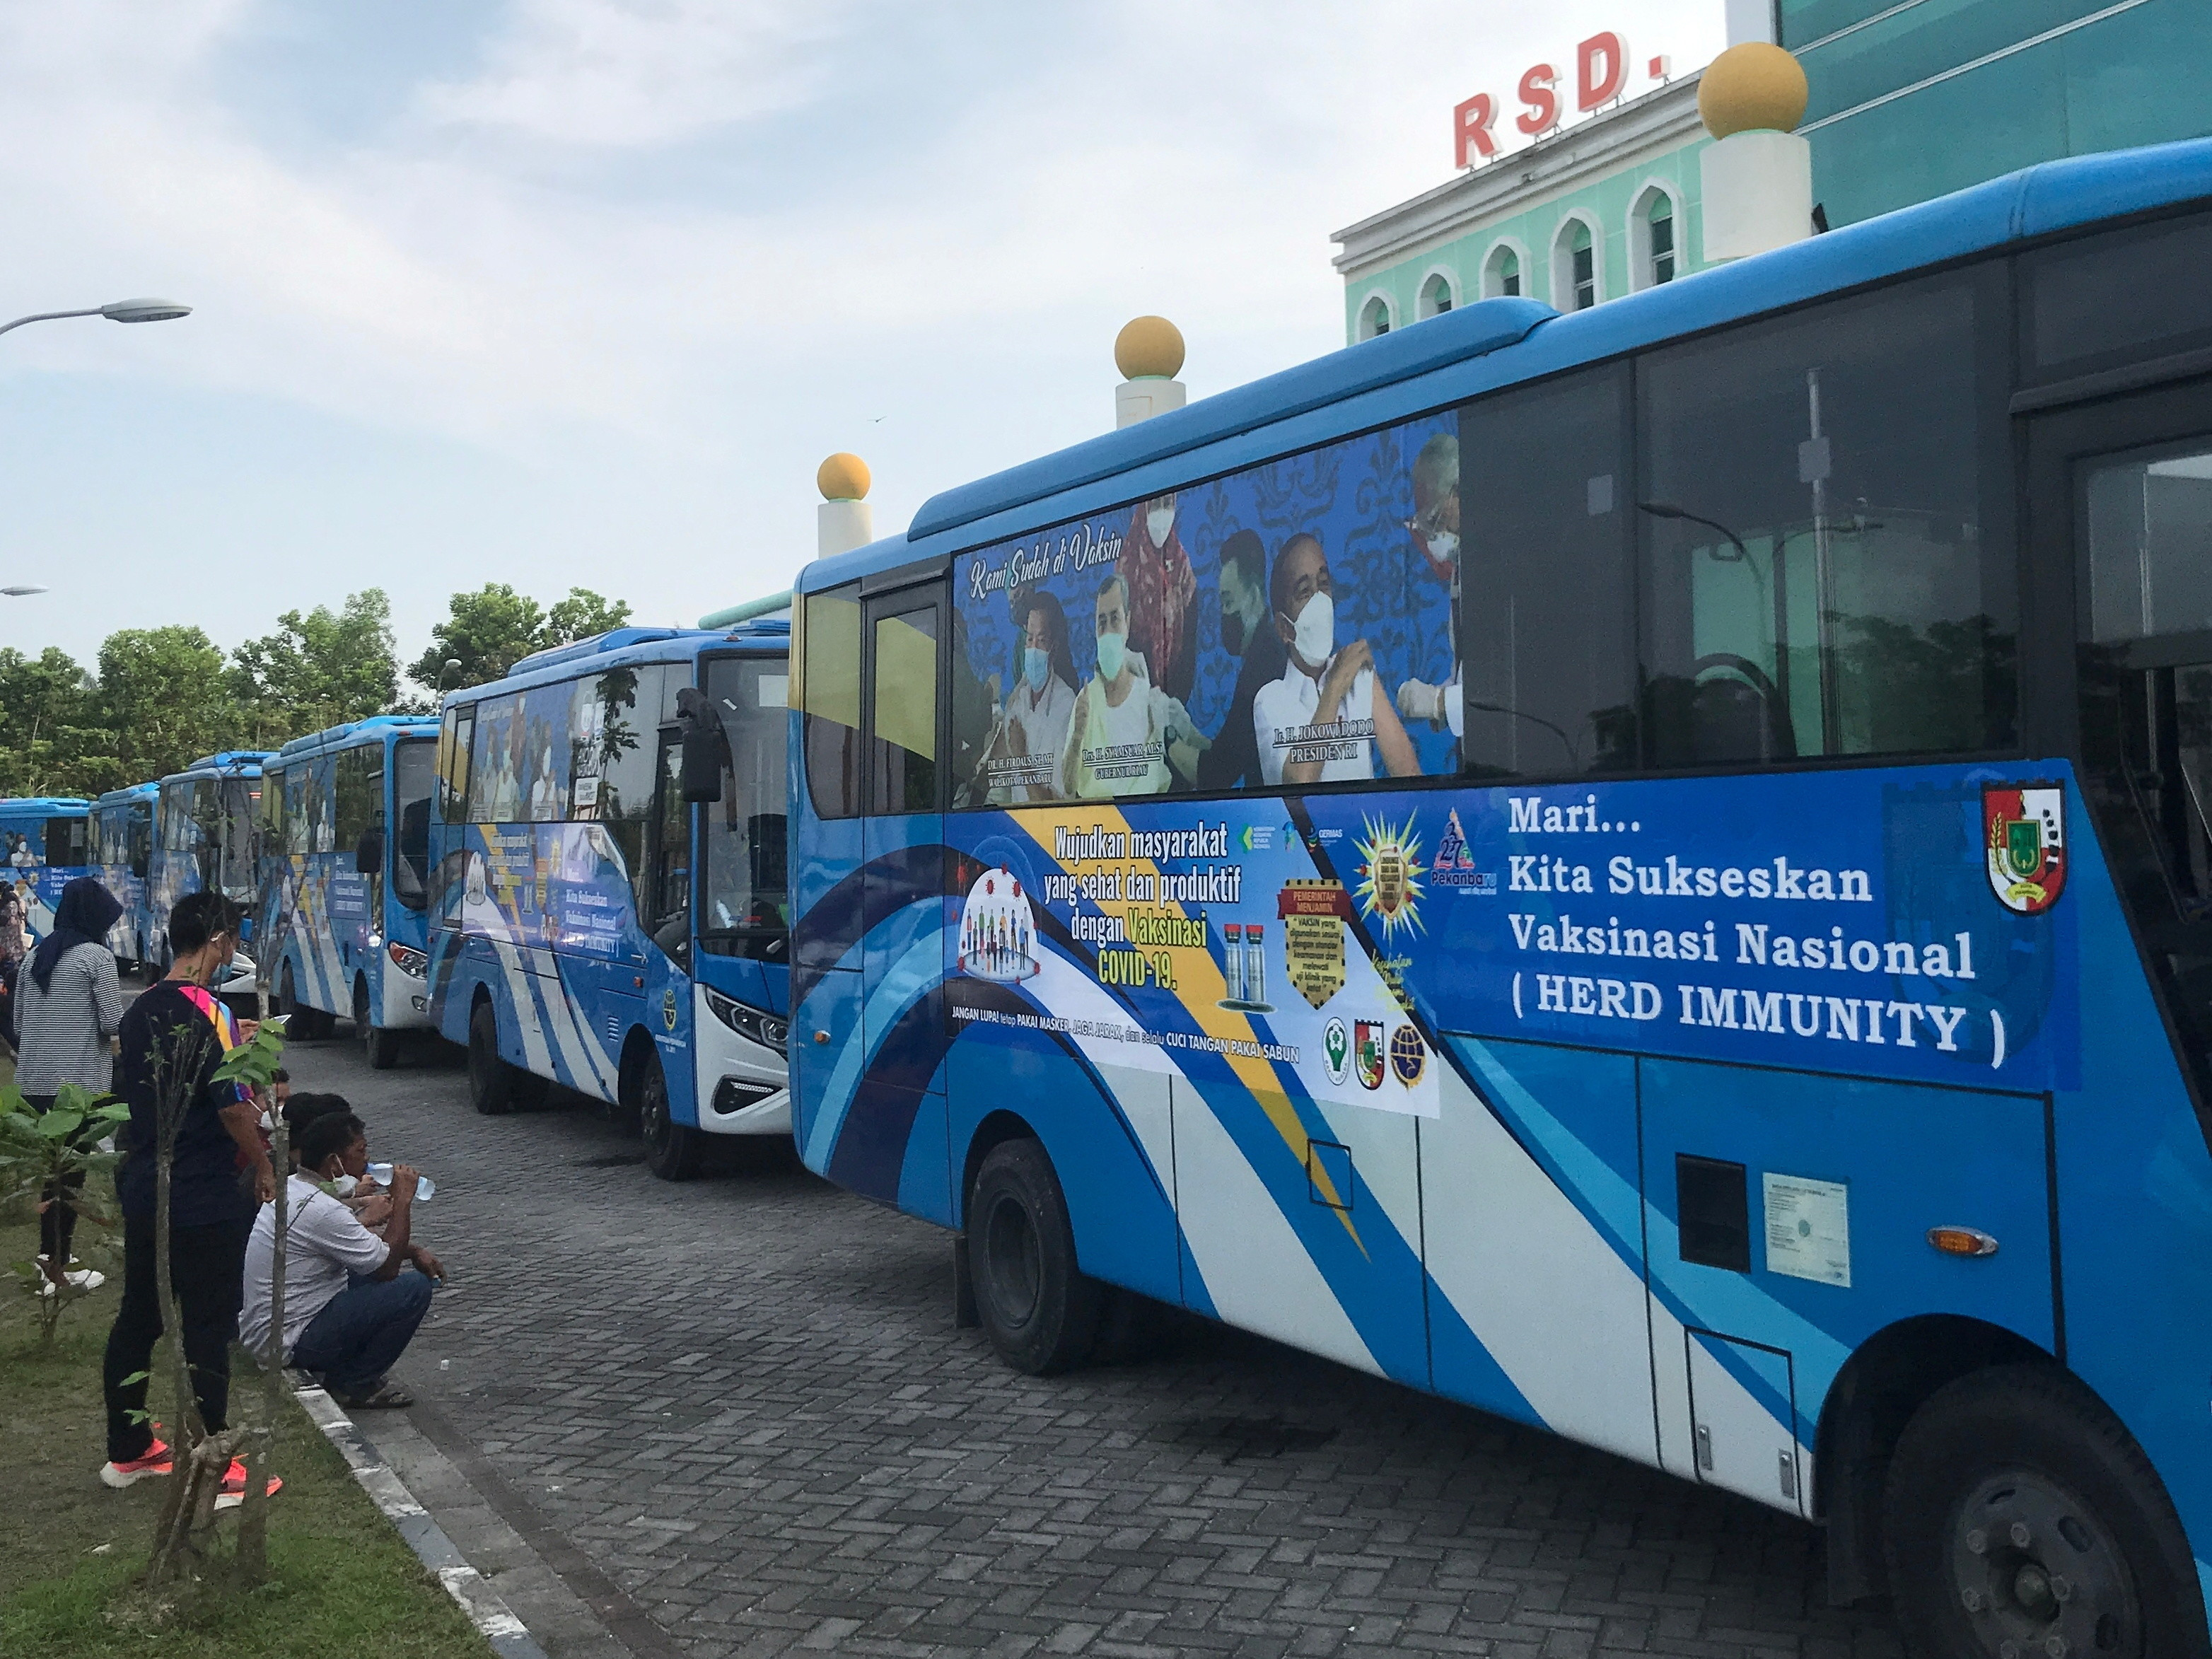 Public buses, used as a coronavirus disease (COVID-19) vaccination venue, are seen parked outside the Madani hospital in Pekanbaru, Riau province, Indonesia, June 8, 2021. Picture taken June 8, 2021. REUTERS/Stringer - RC21WN9VOOA3